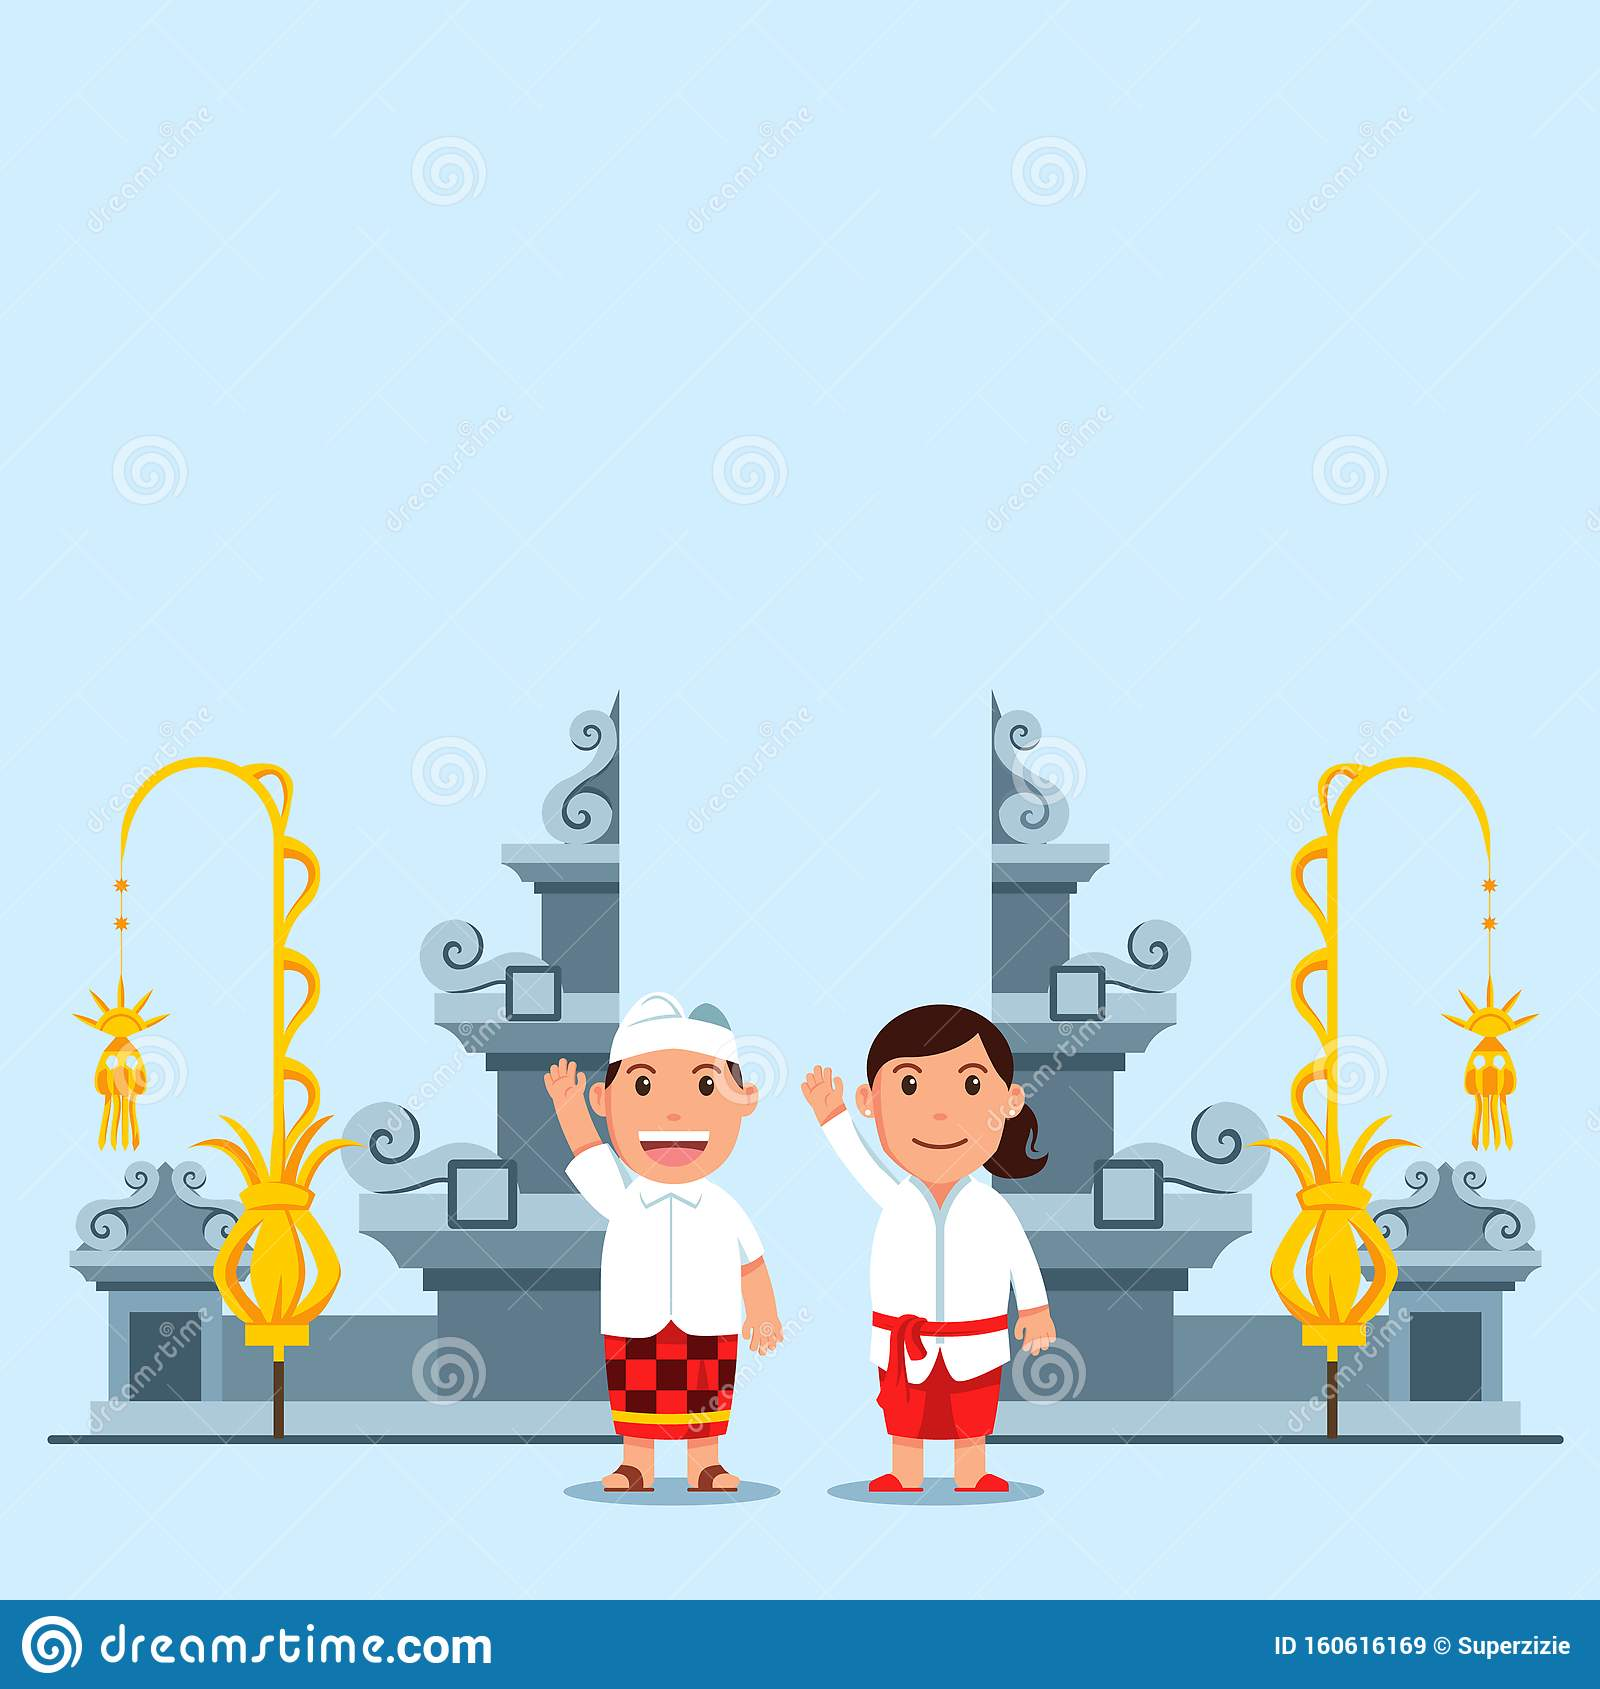 Bali Temple Stock Illustrations 1 513 Bali Temple Stock Illustrations Vectors Clipart Dreamstime